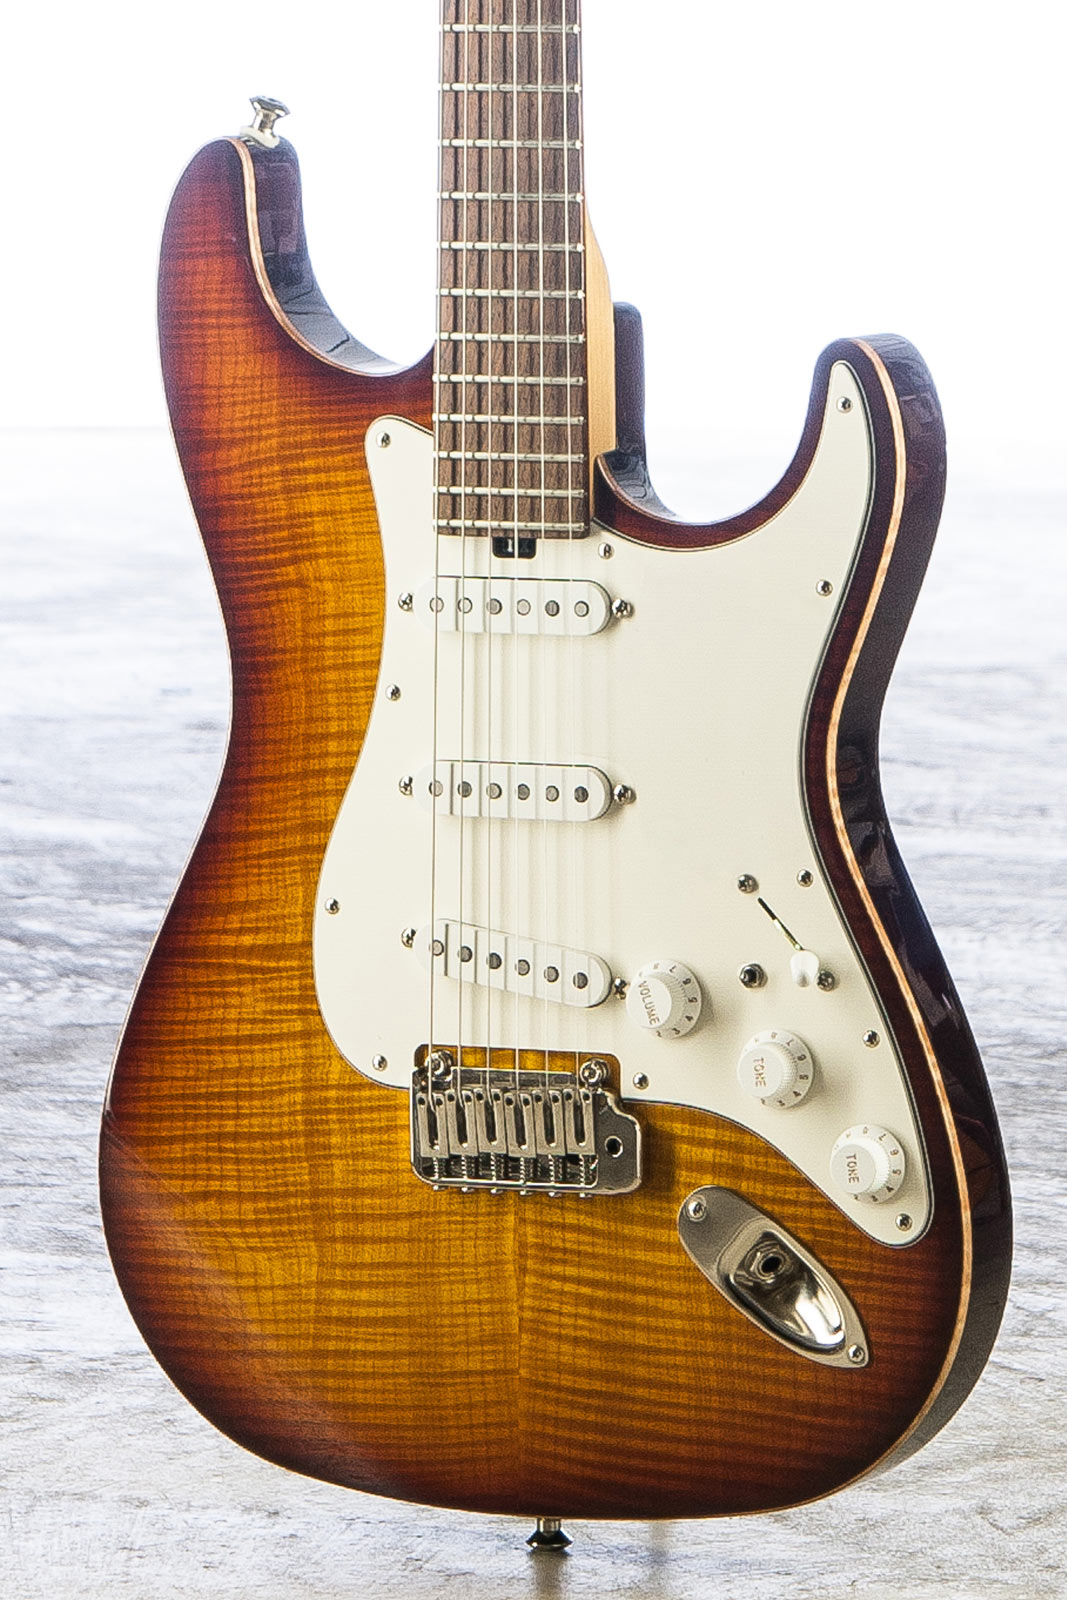 Classic double cutaway; Chambered body, available in Standard, Vintage, and Ultra-Vintage.